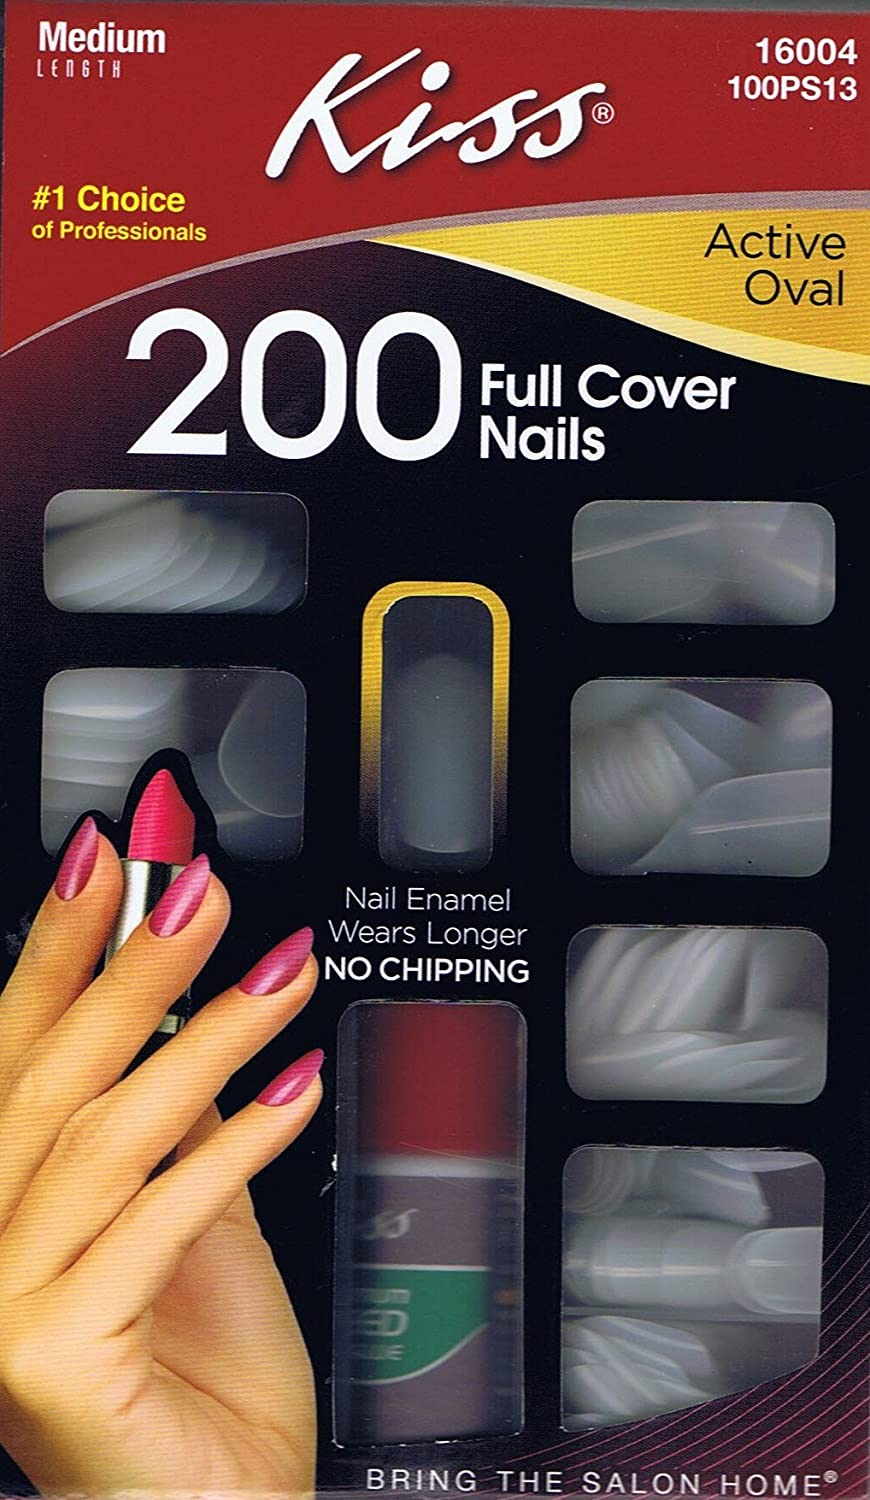 Amazon.com: Kiss Full Cover Nails Kit, Active Oval - 200 Count: Beauty